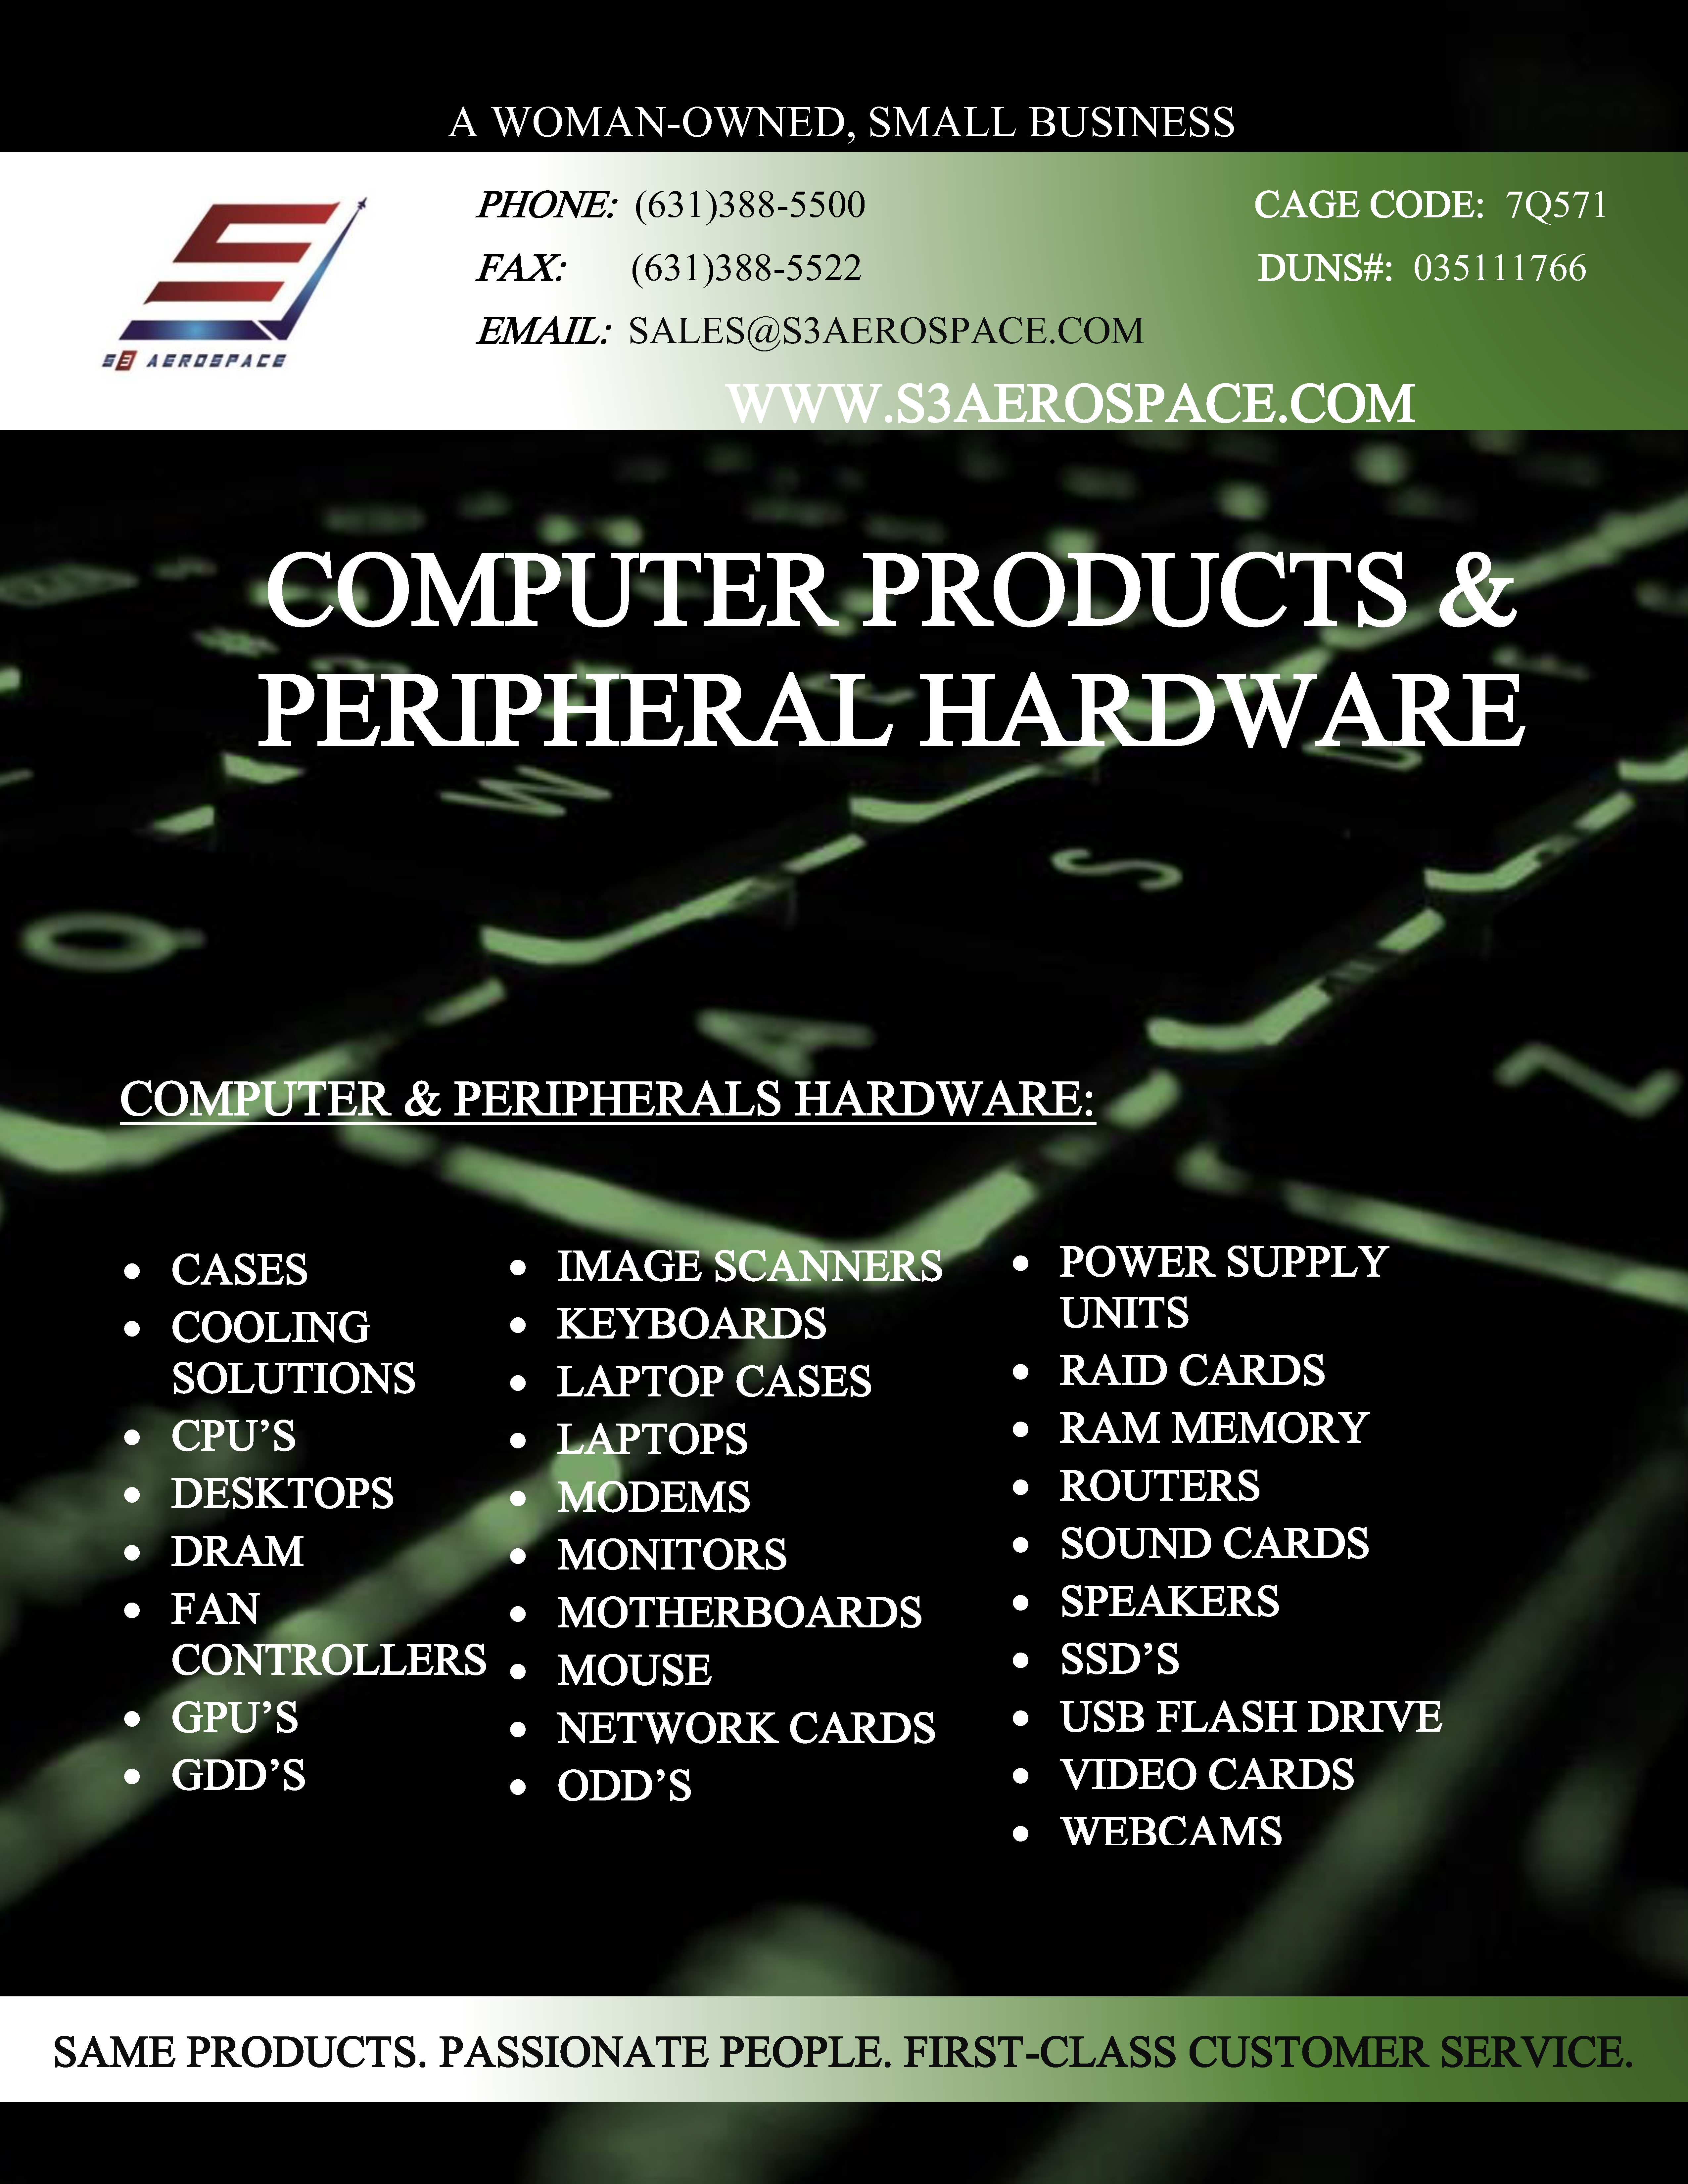 Computer and Peripherals